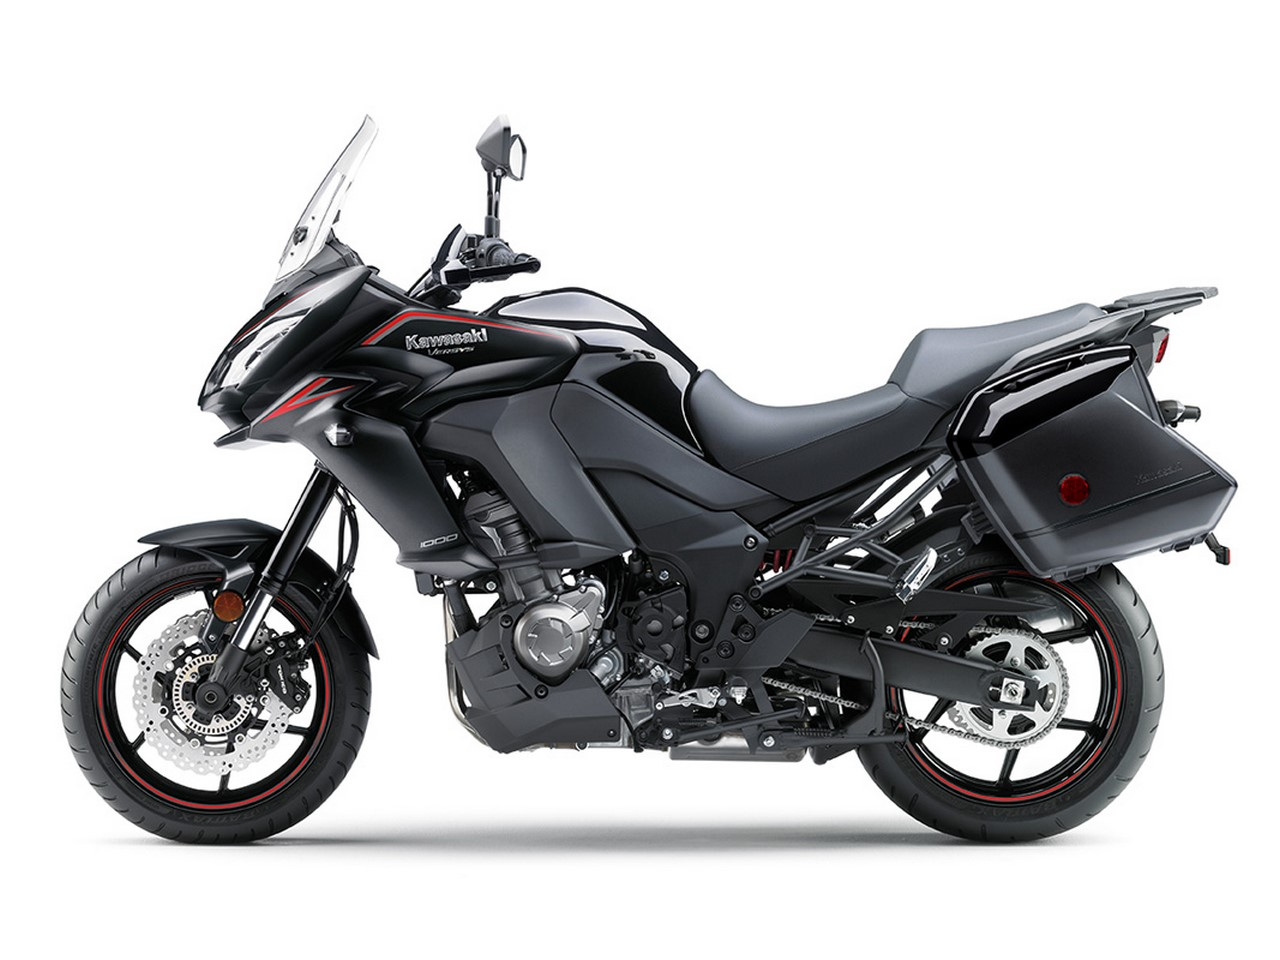 kawasaki versys 1000 discontinued in india report. Black Bedroom Furniture Sets. Home Design Ideas